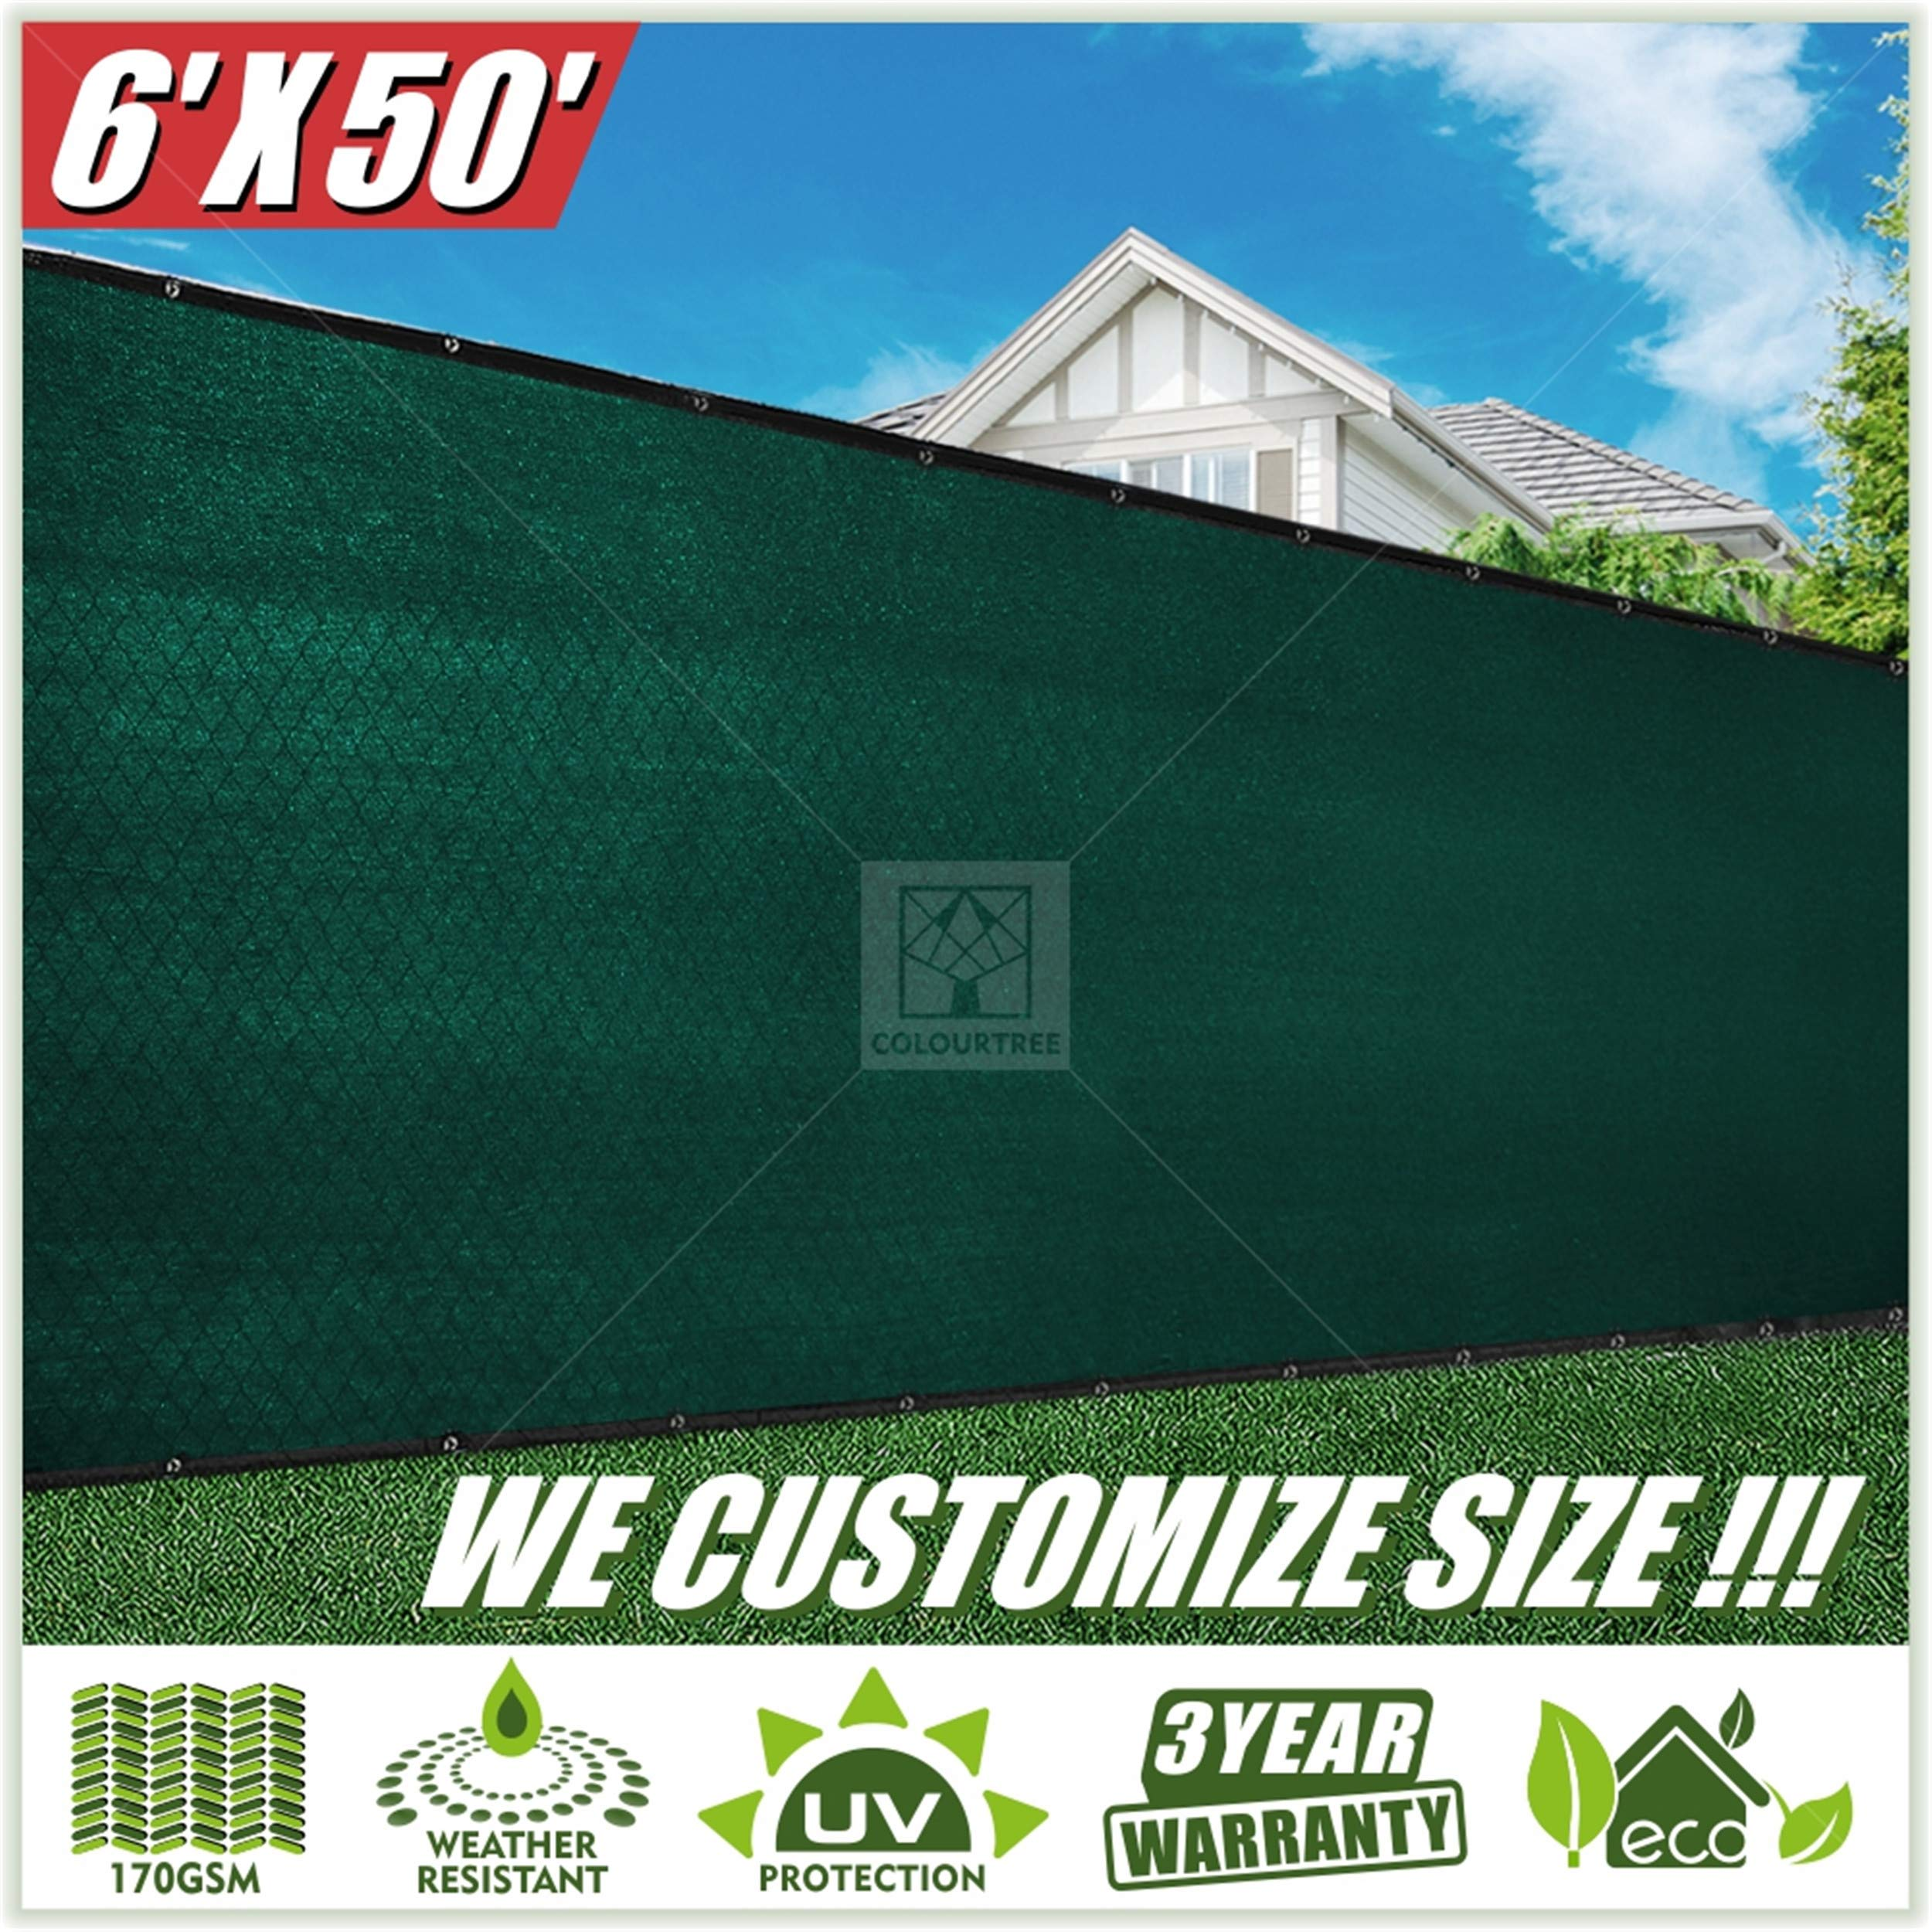 ColourTree 2nd Generation 6' x 50' Green Fence Privacy Screen Windscreen, Commercial Grade 170 GSM Heavy Duty, We Make Custom Size by ColourTree (Image #2)